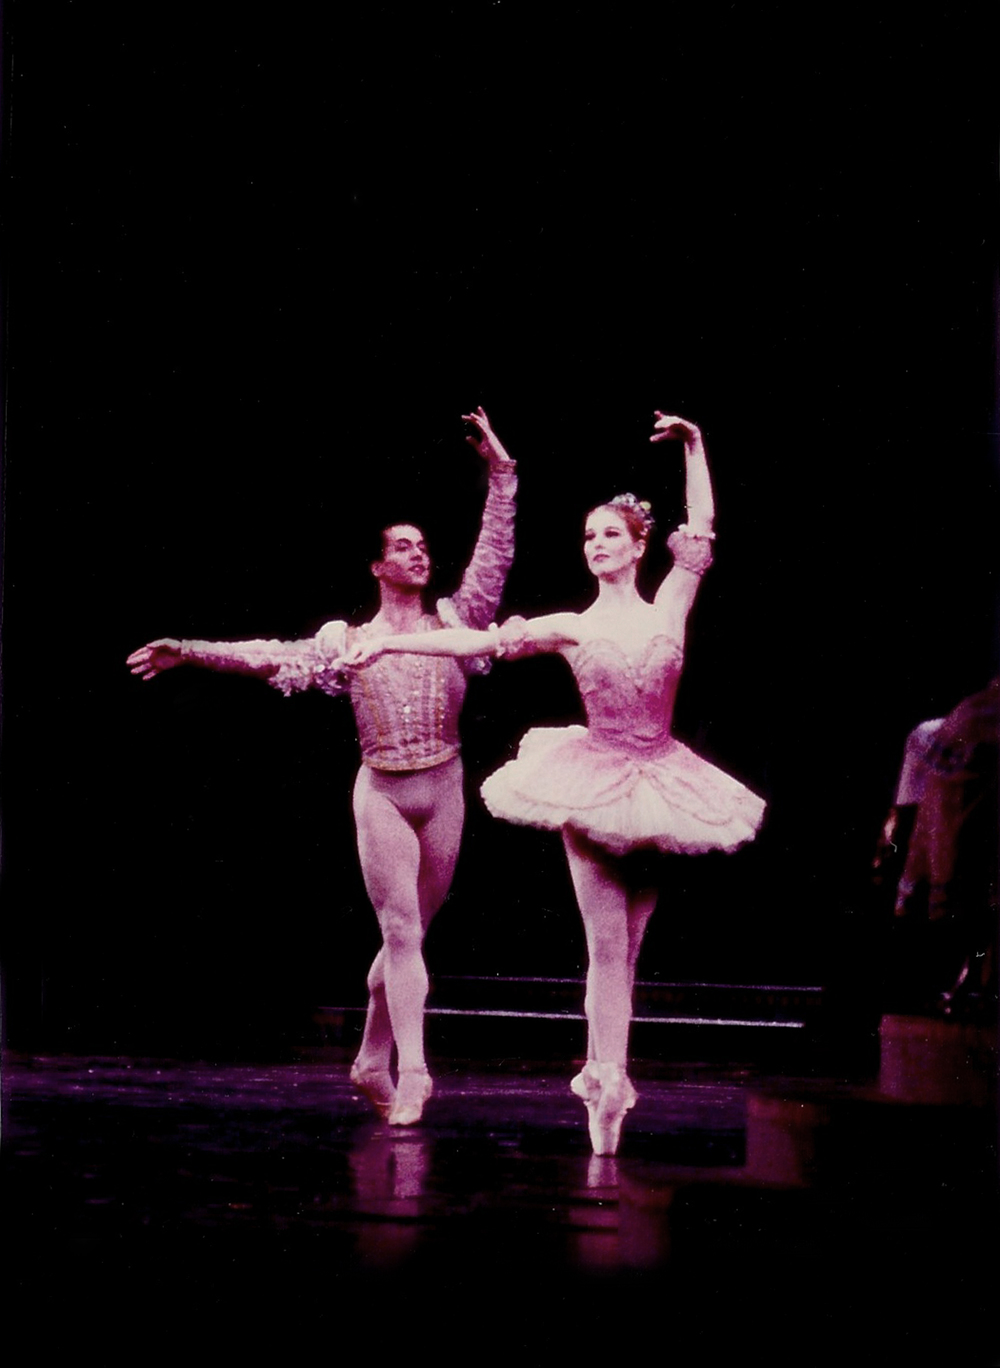 Nutcracker Sugar Plum Fairy with Karl Condon as Cavalier – Boston Ballet.